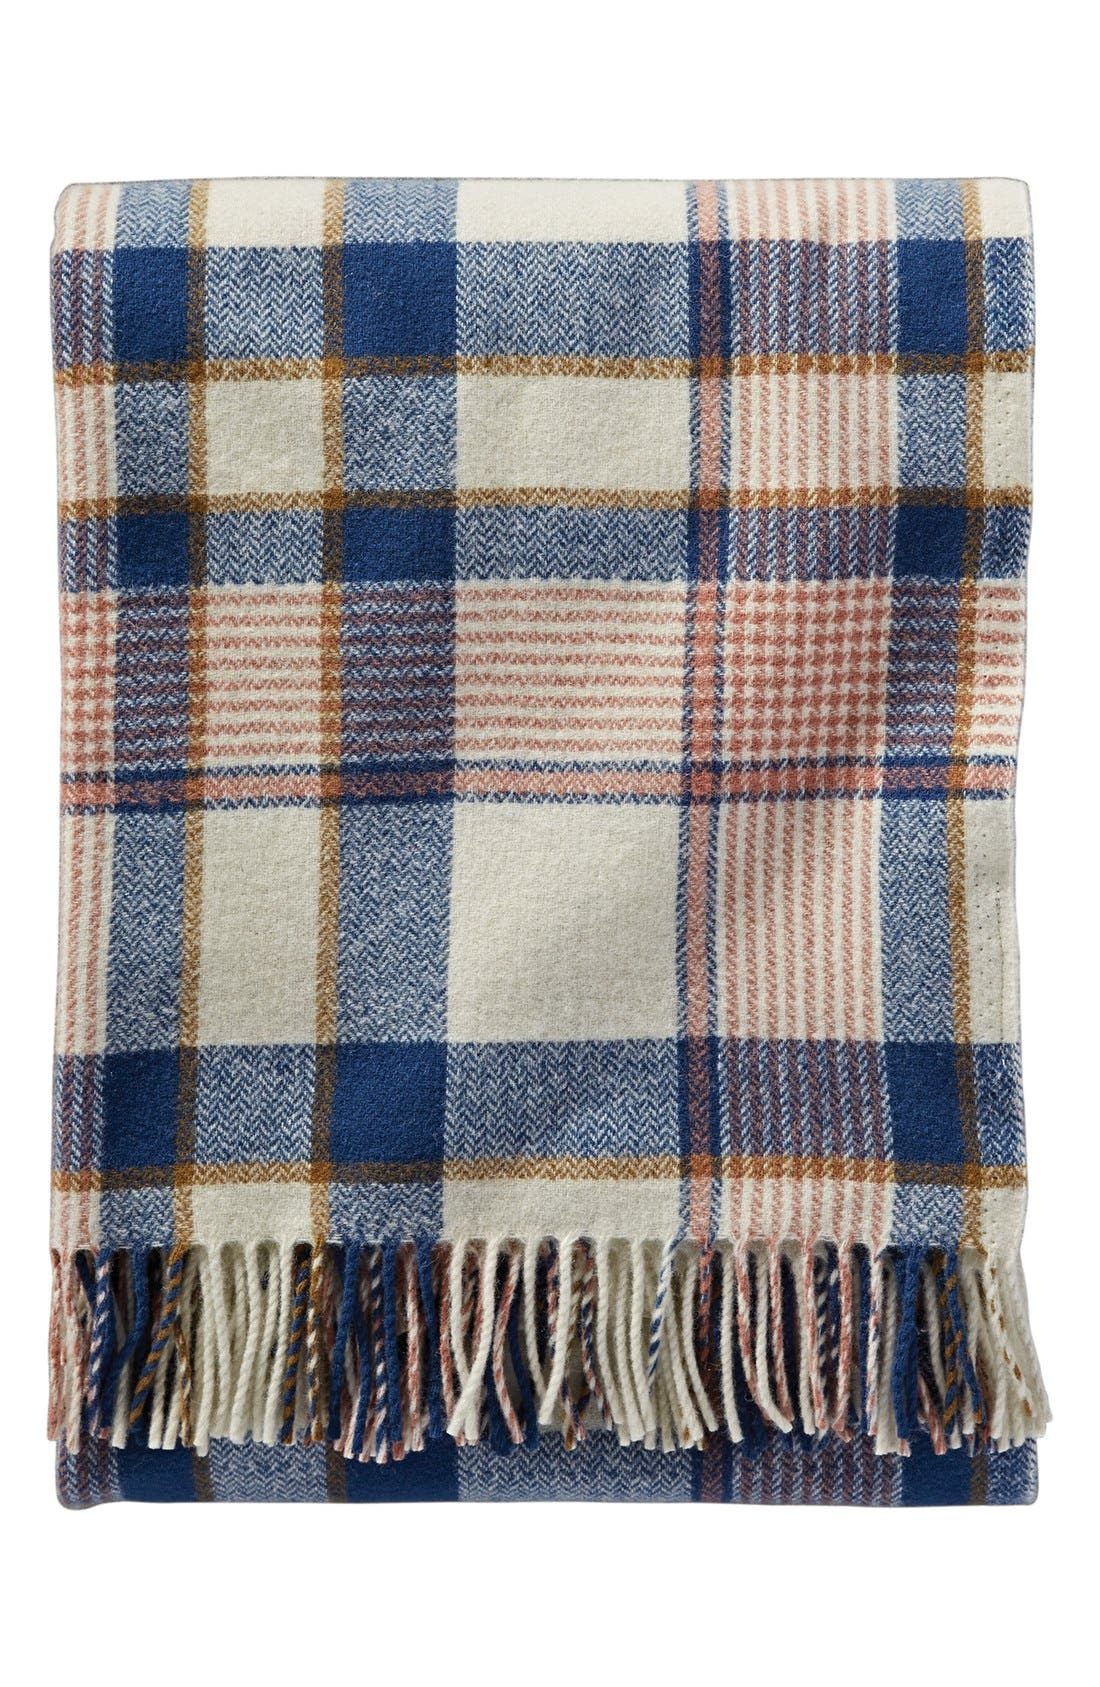 Main Image - Pendleton 'Hampshire Plaid' Throw Blanket & Carrier